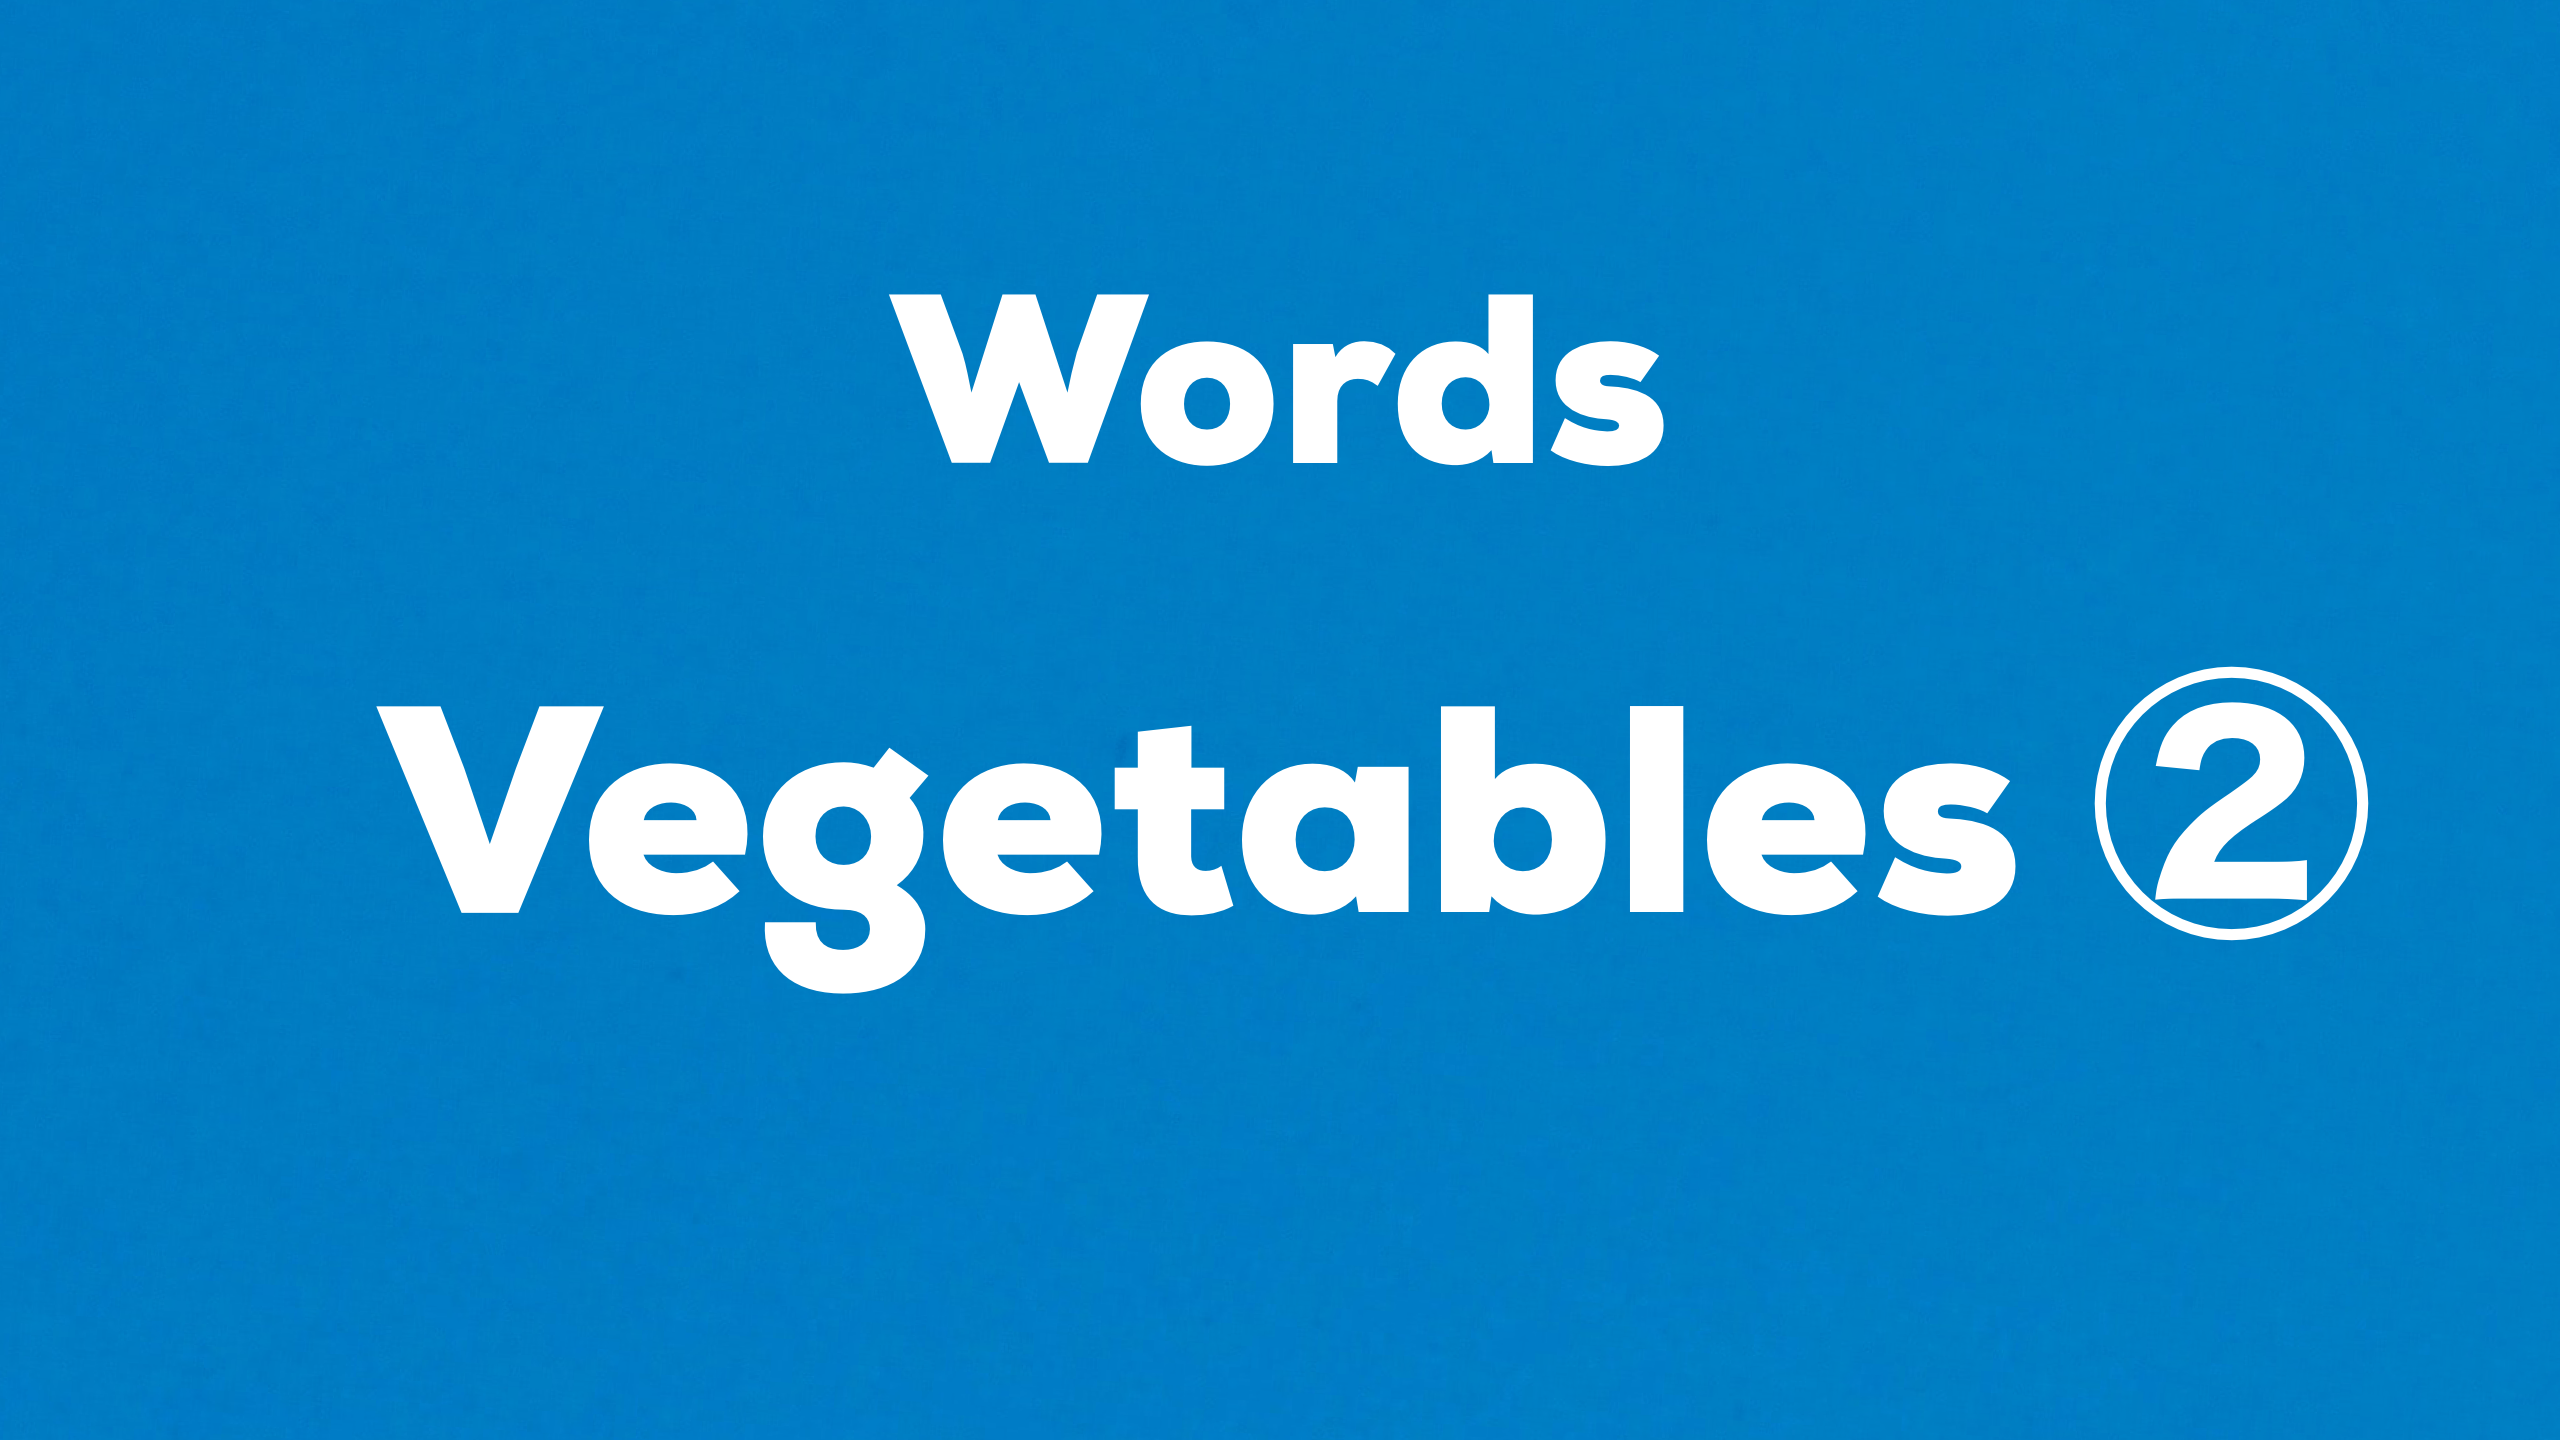 Words Vegetables② 難易度☆